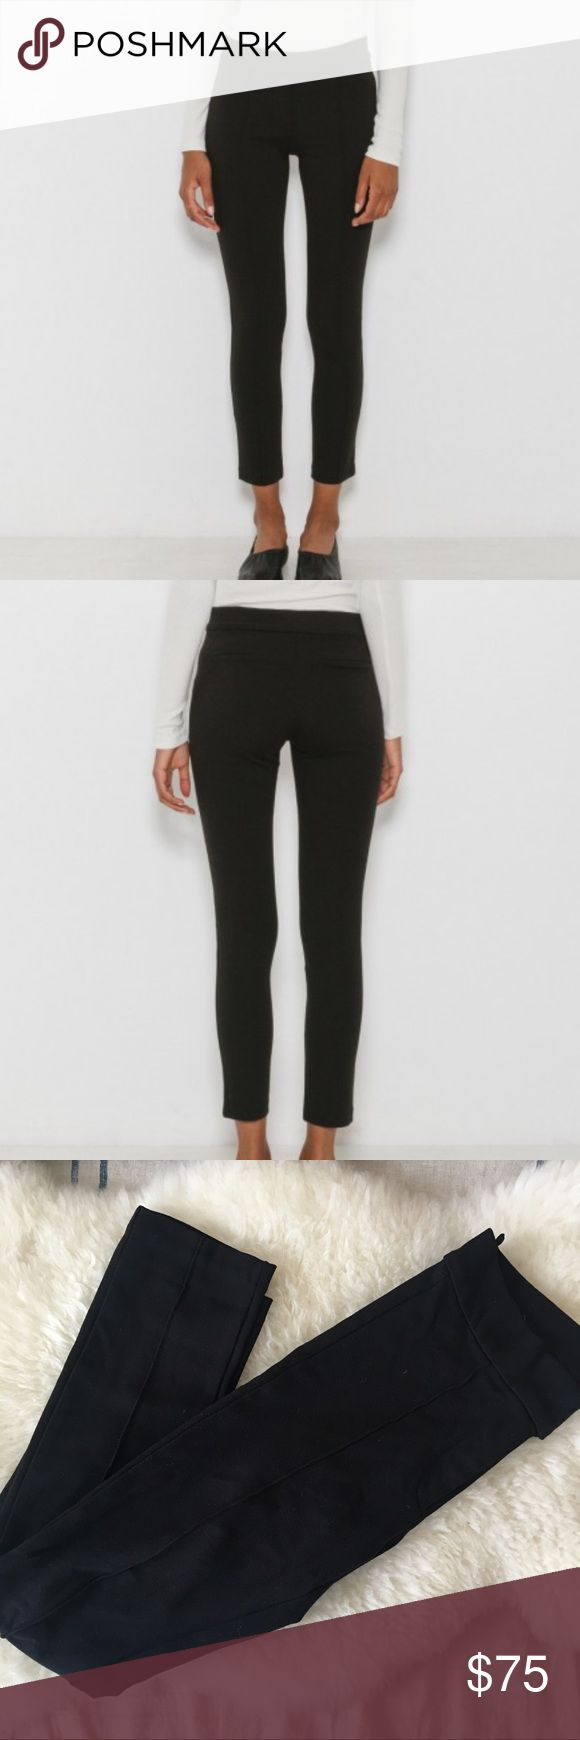 ✨SALE✨ Classic Black Pin-Tuck Stretch ponte knit pants with pintuck detail down front. Zip front hook and bar closure. 69% viscose, 25% nylon, 6% elastane. Made in the U.S.A. for GBTSO, a classic women's line designed by Citizens of Humanity co-founder John Ward. Women's size XS. Measurements are taken flat: Waist - 14 in, Hip - 17 in, Rise - 7 in, Inseam - 28 in. These look like flattering pants but feel as comfy as high-quality, thick-material leggings. Purchased NEW in January 2017…